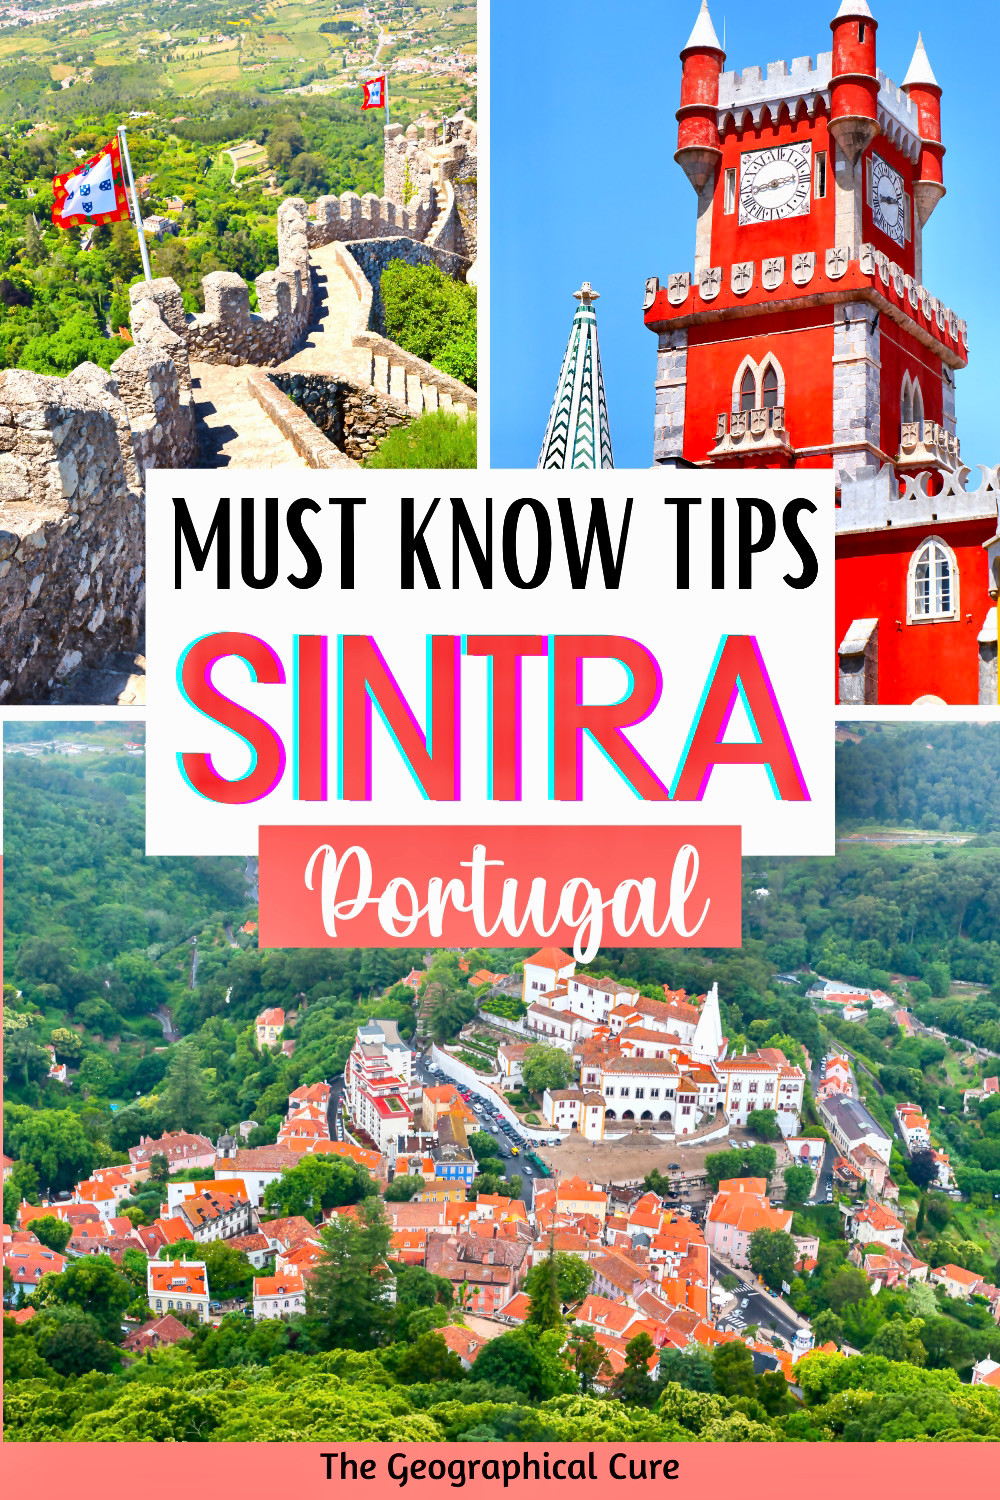 ultimate guide to Sintra Portugal: Must Know Tips and How To Avoid Mistakes in the must visit UNESCO town